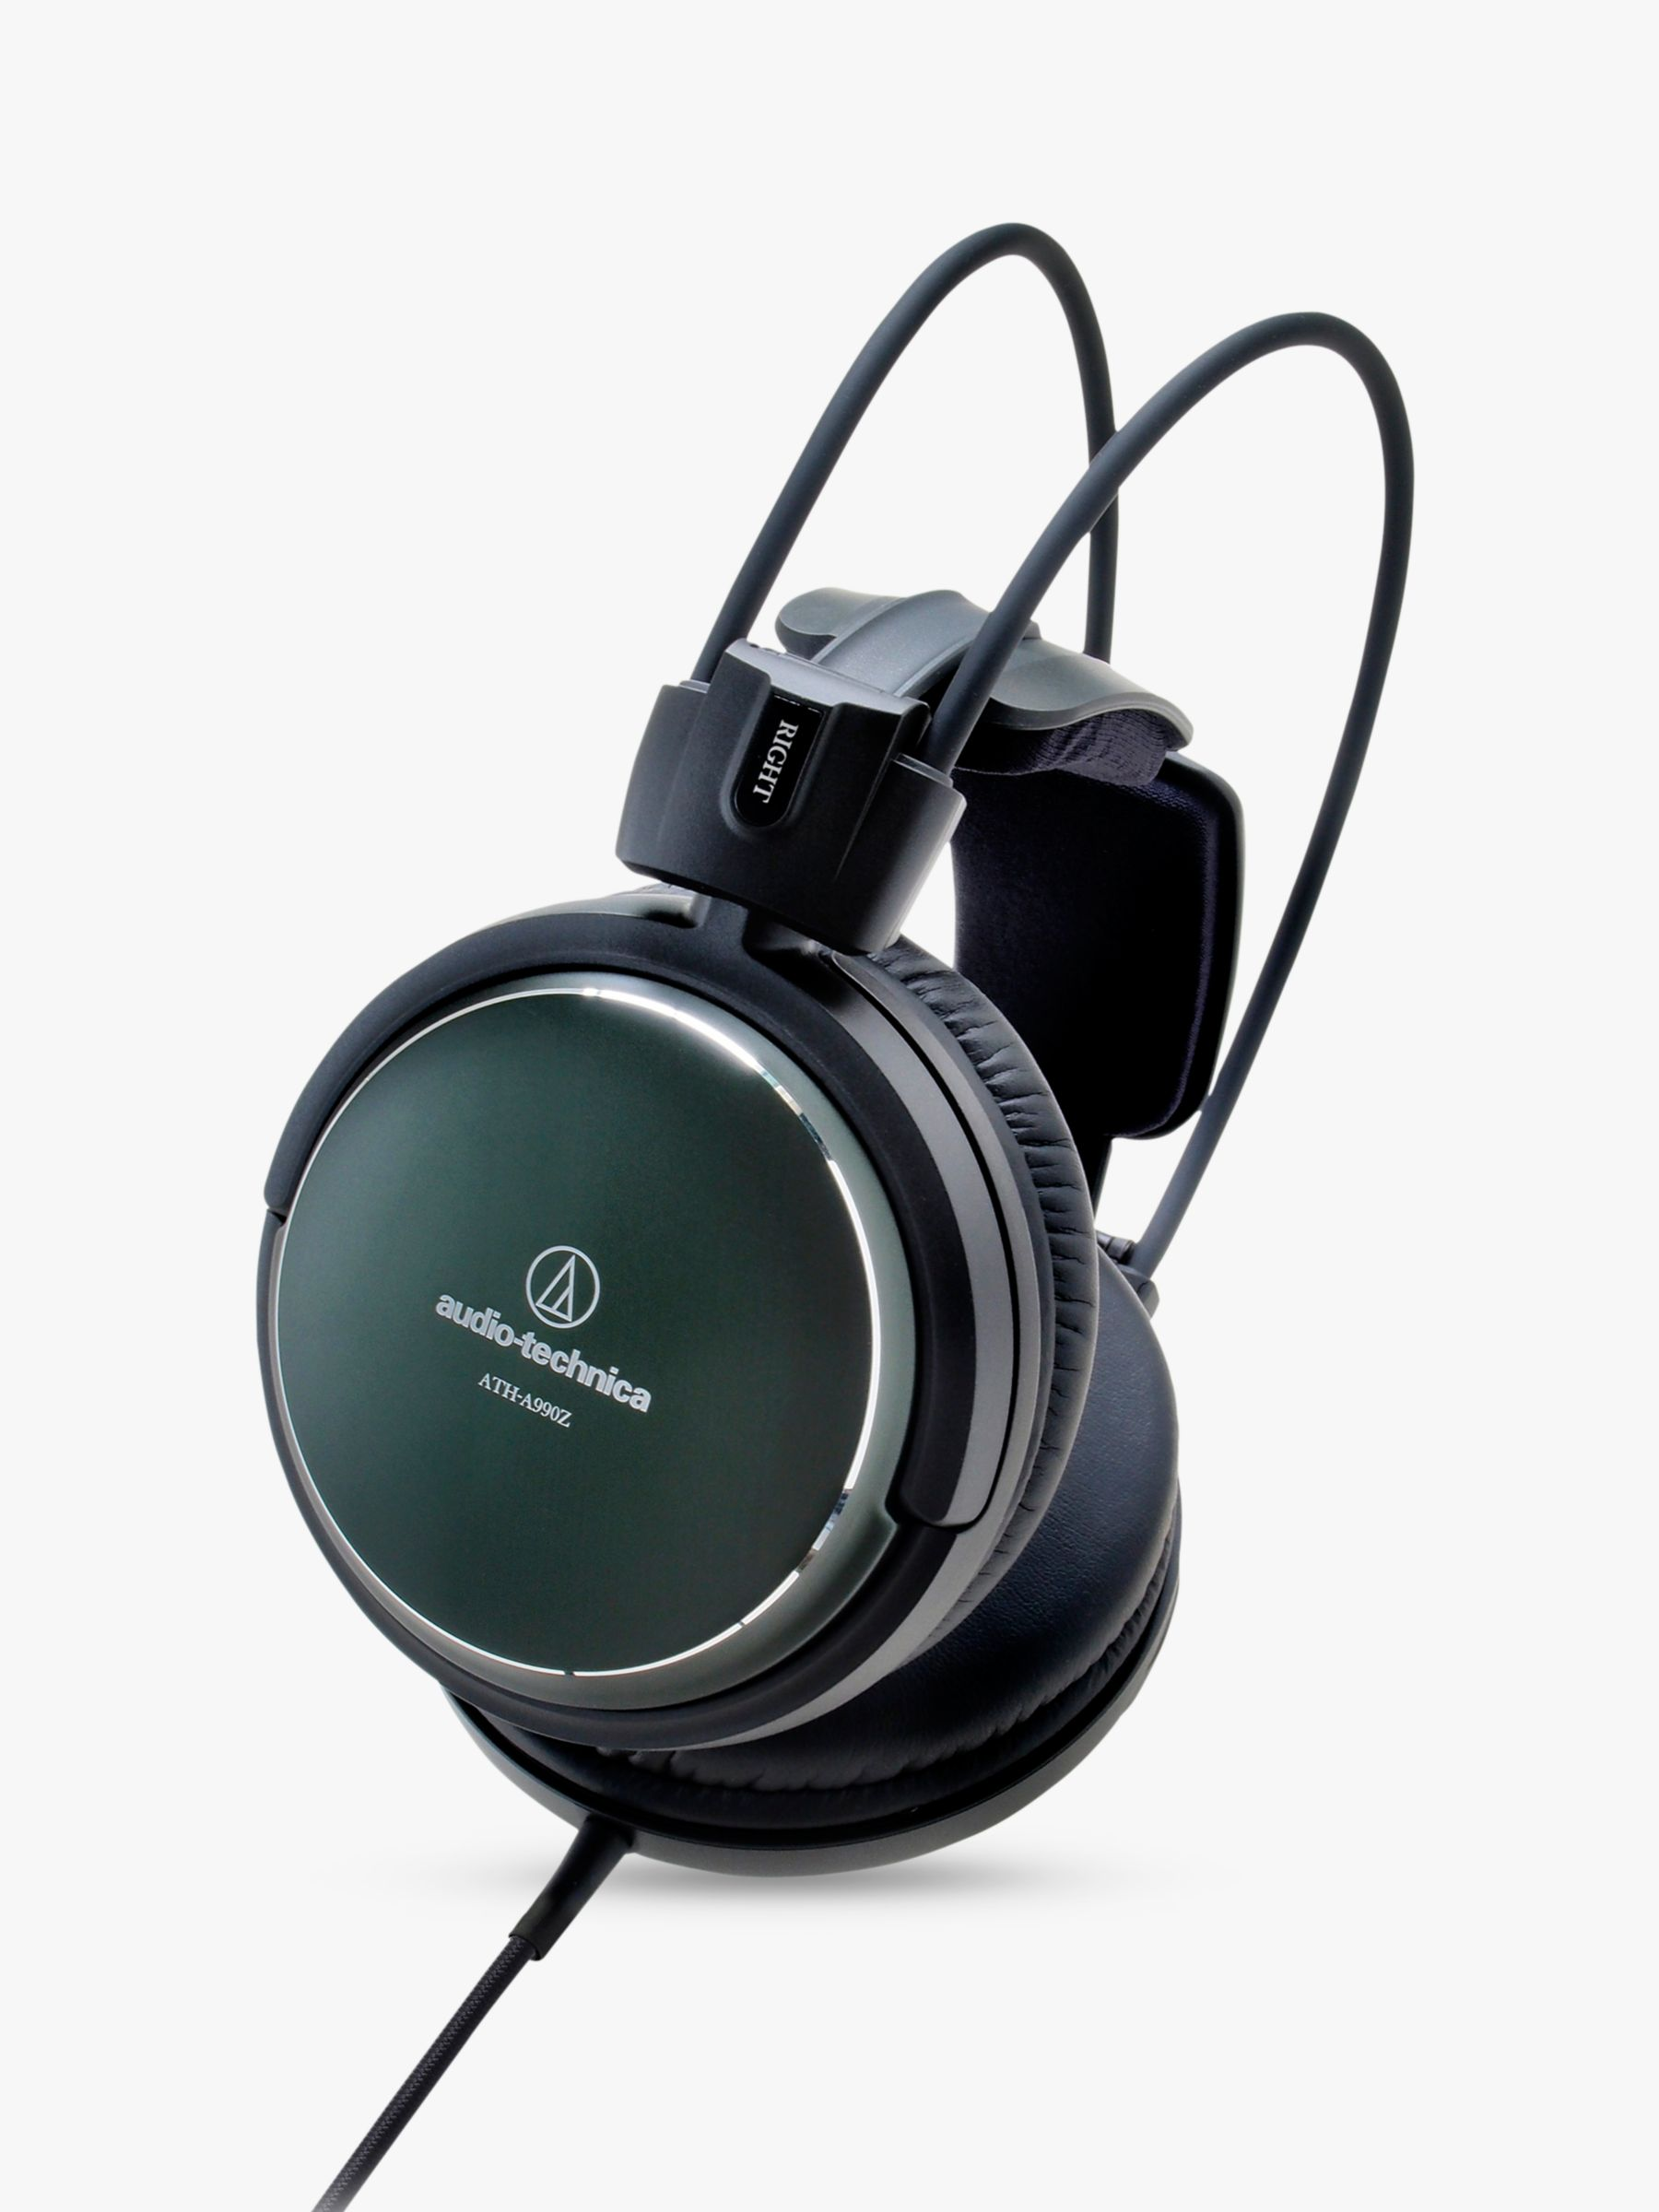 Audio-Technica Audio-Technica ATH-A990Z Art Monitor Over-Ear Closed-Back Dynamic Headphones, Green